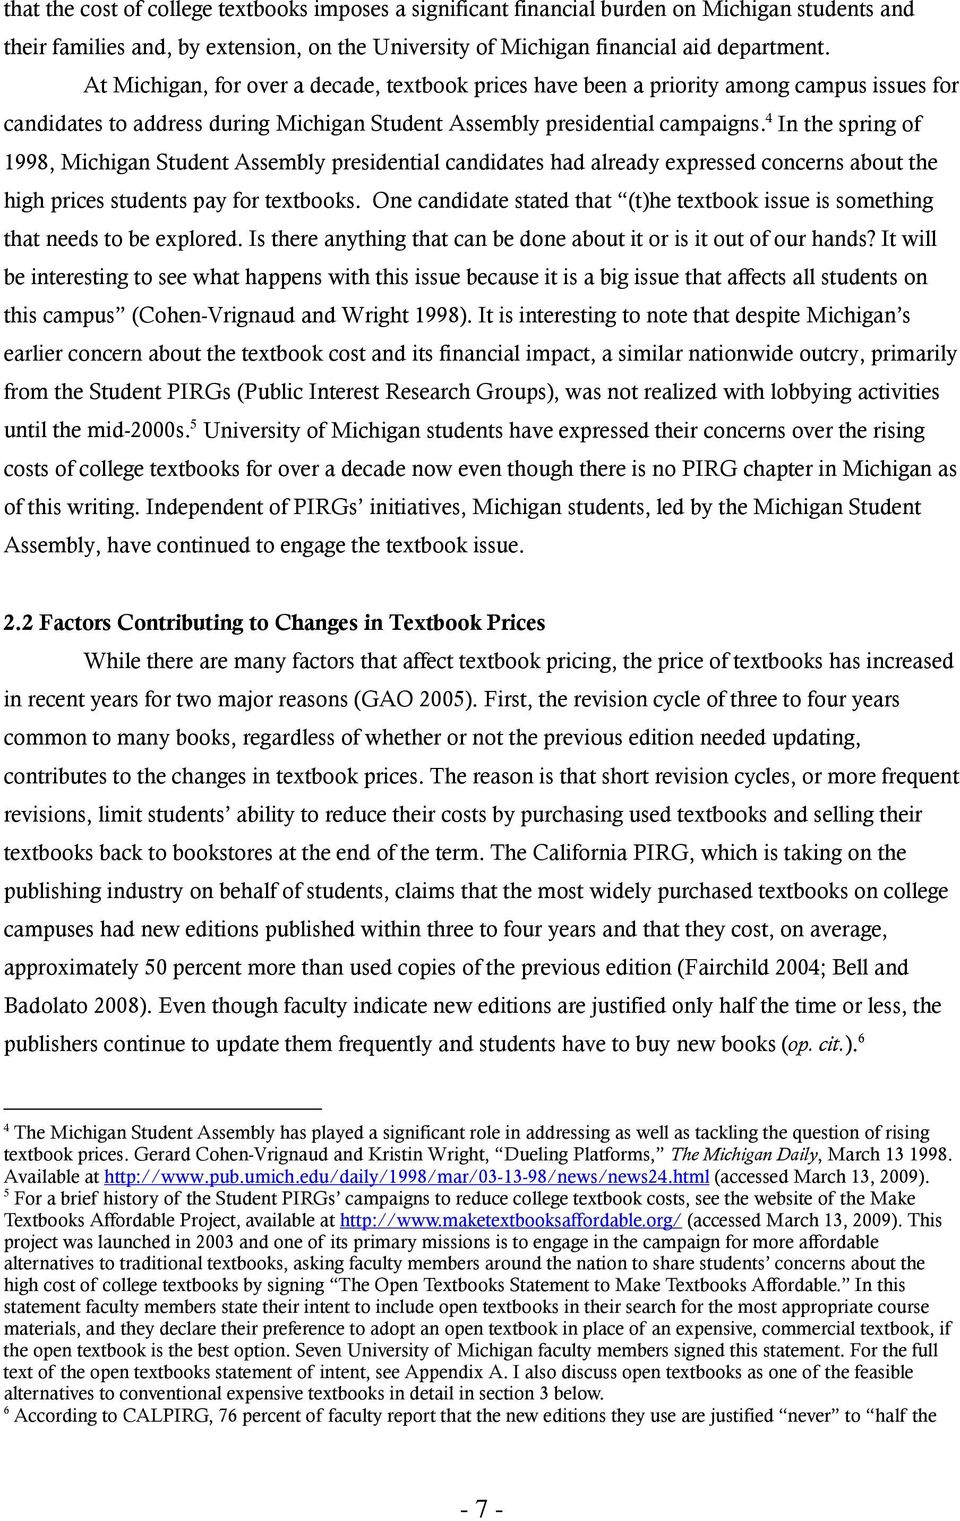 4 In the spring of 1998, Michigan Student Assembly presidential candidates had already expressed concerns about the high prices students pay for textbooks.